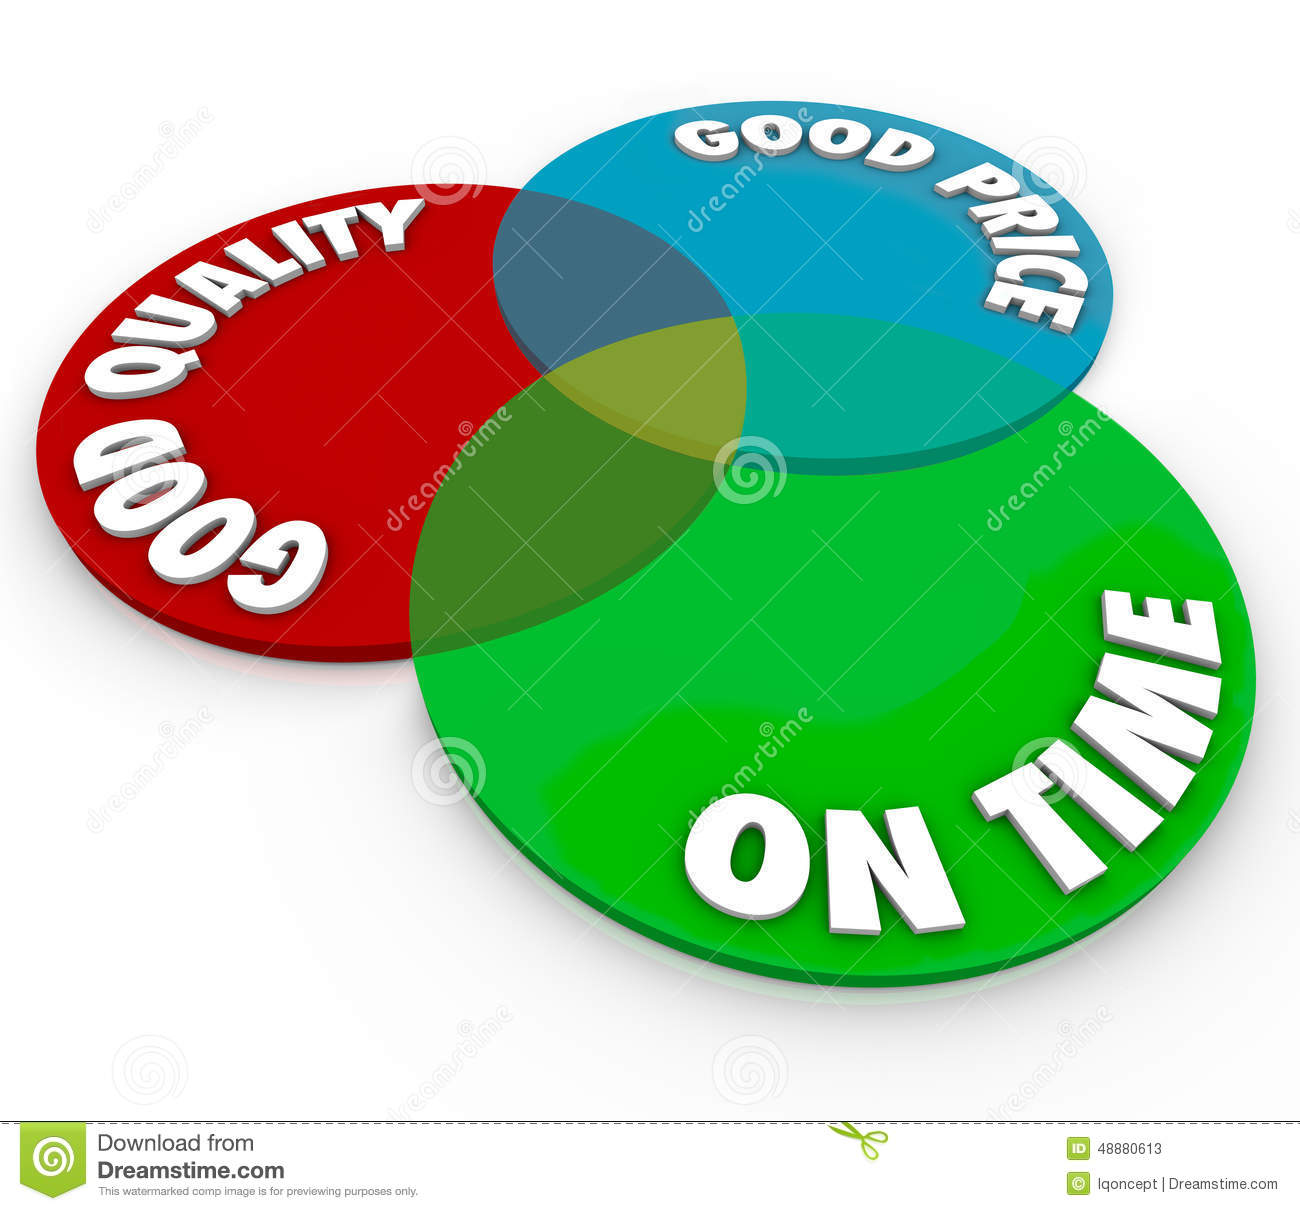 Good Price Quality On Time Venn Diagram Perfect Ideal